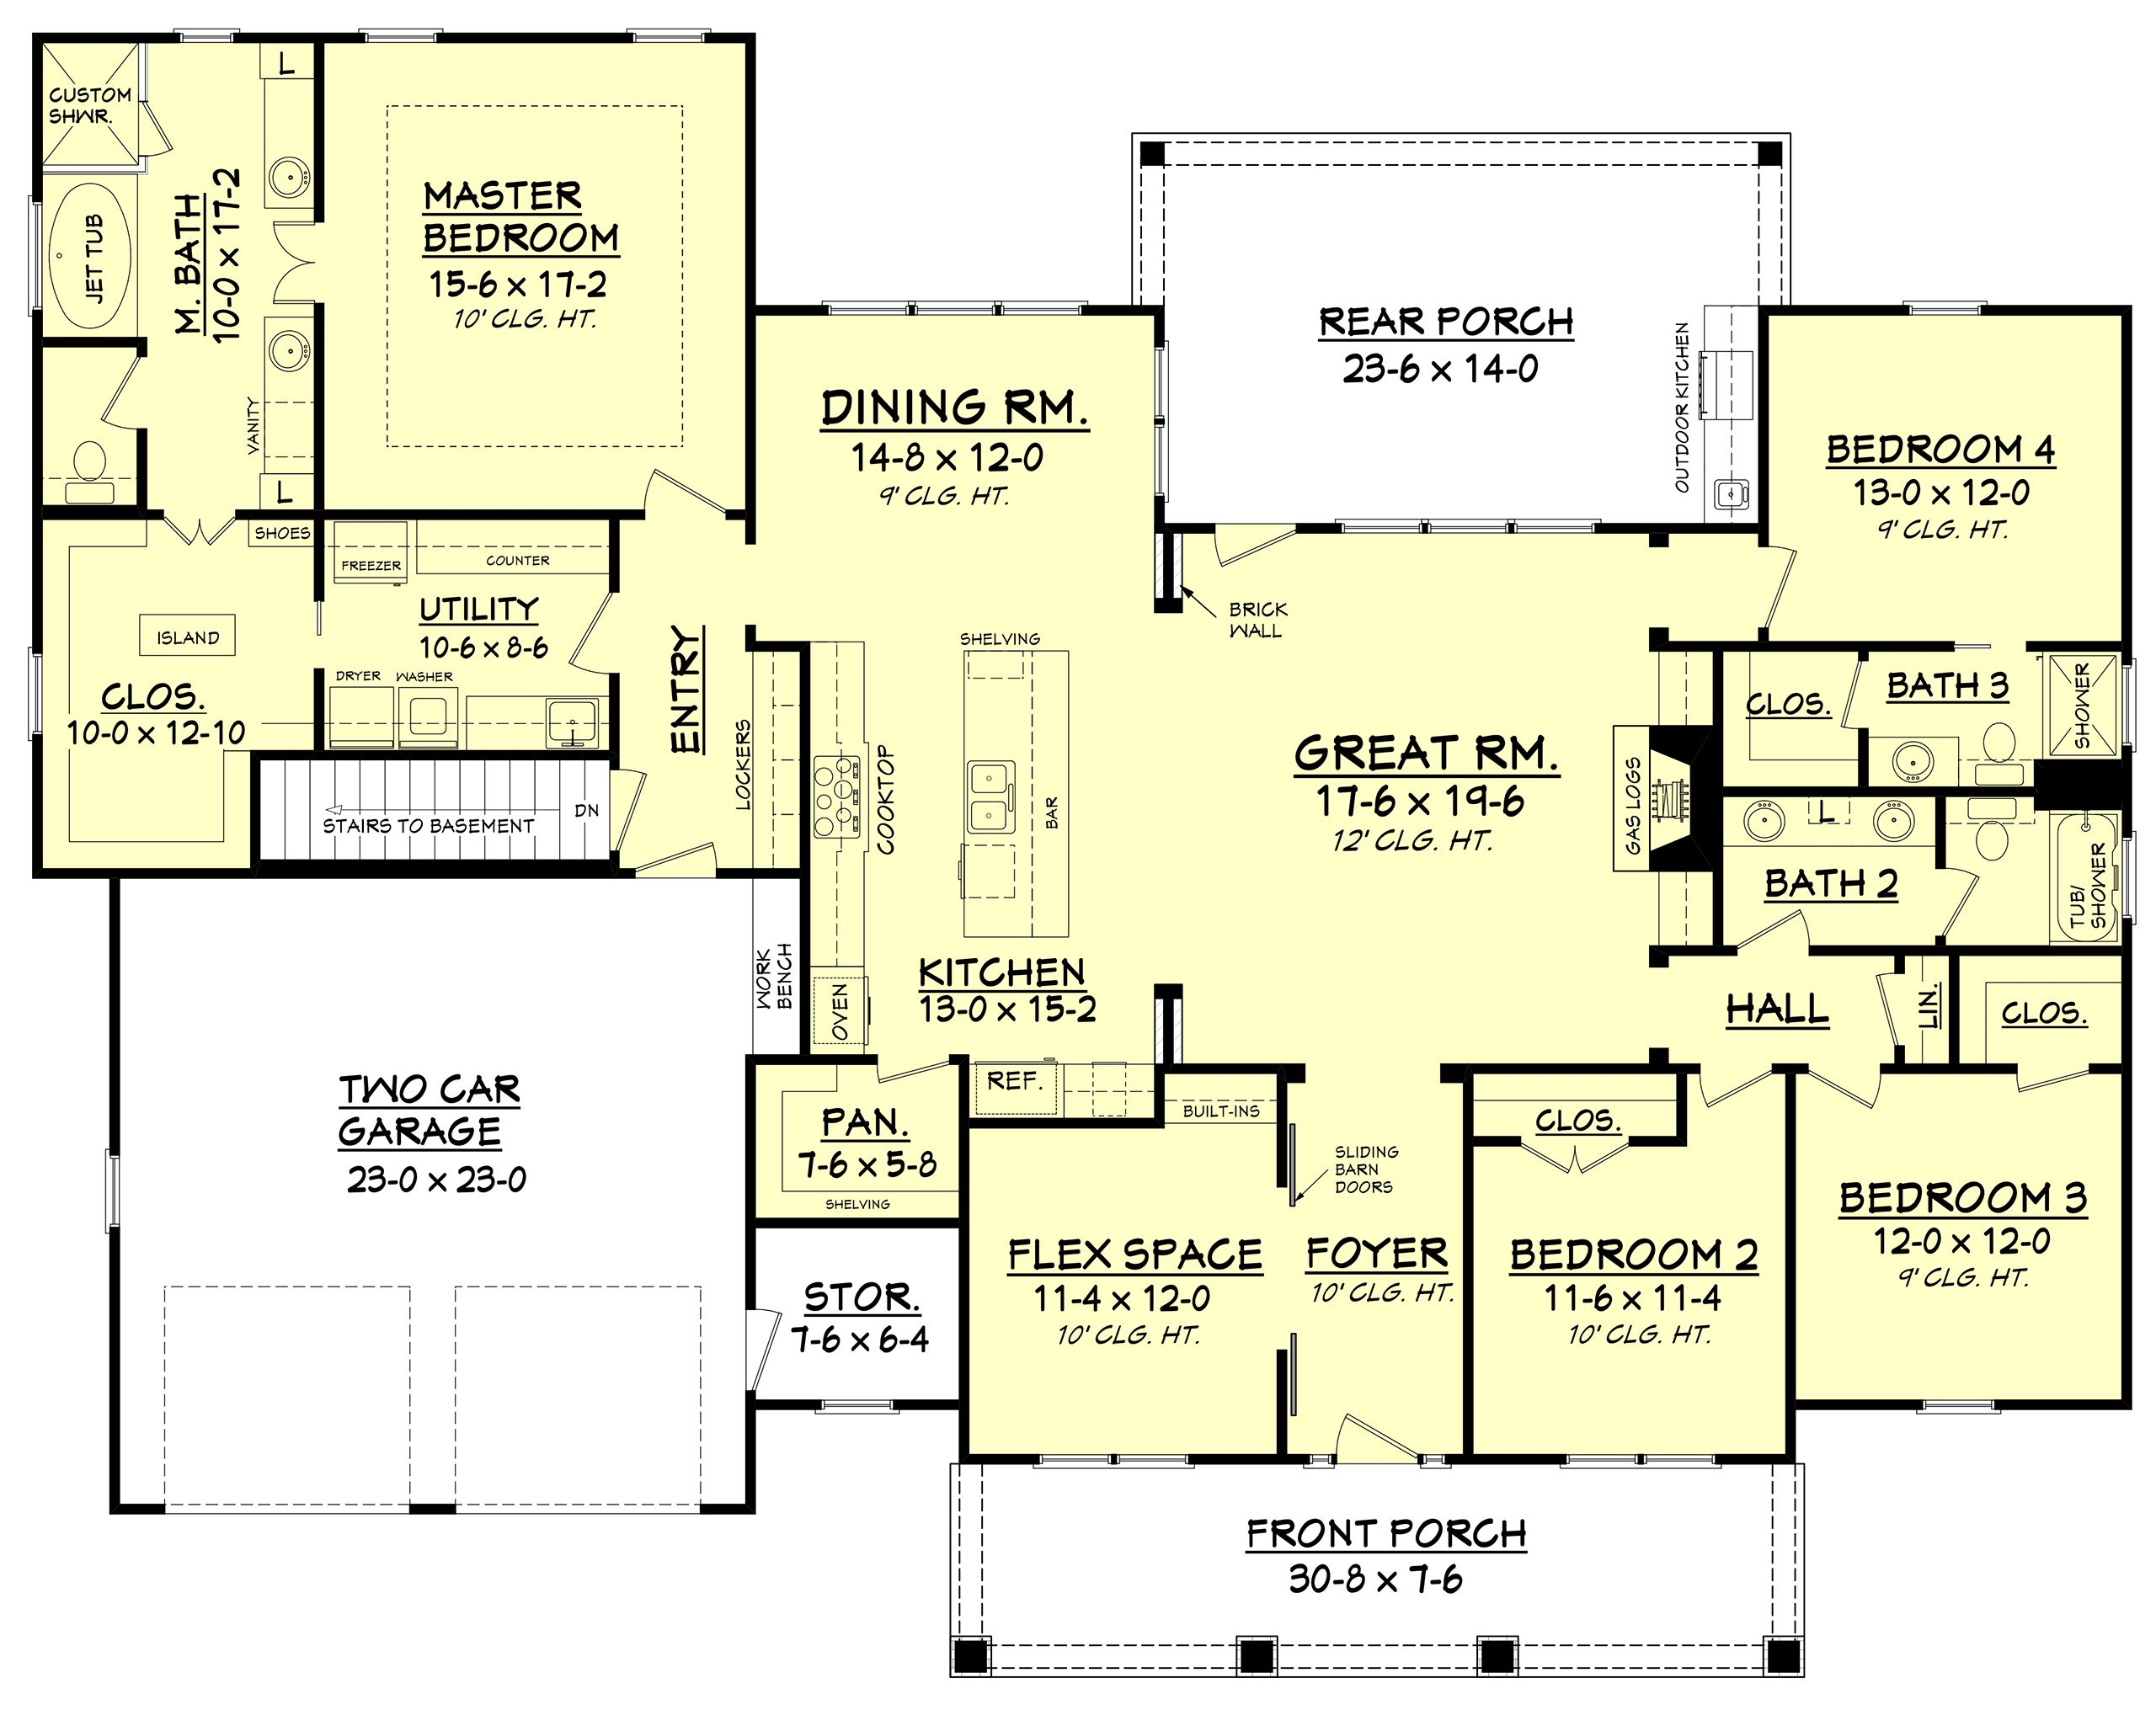 Craftsman style house plan 4 beds 3 baths 2639 sq ft for Floor plans 4 bedroom 3 bath